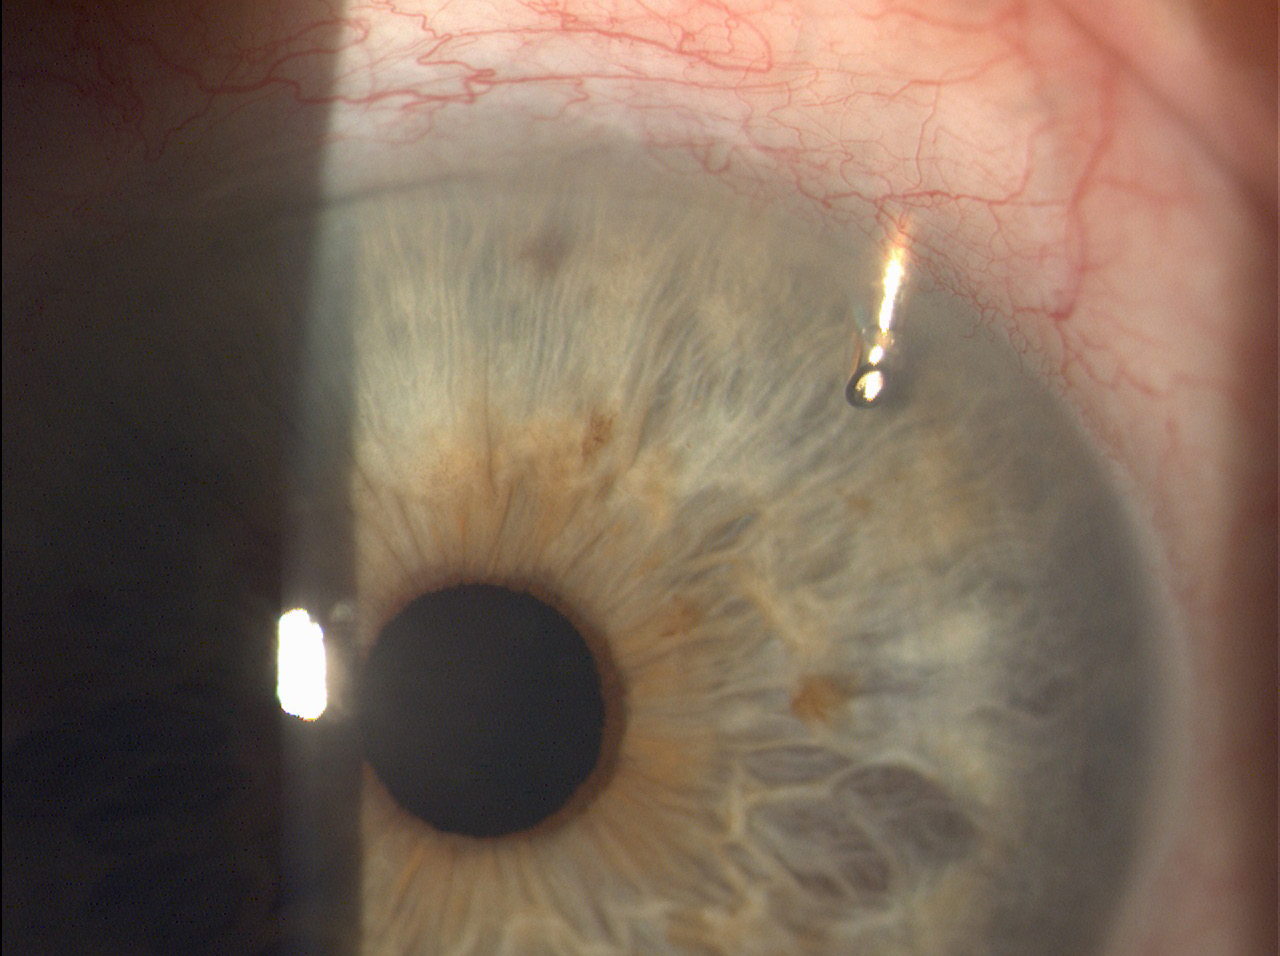 EX-PRESS implant located in the upper outer quadrant of the